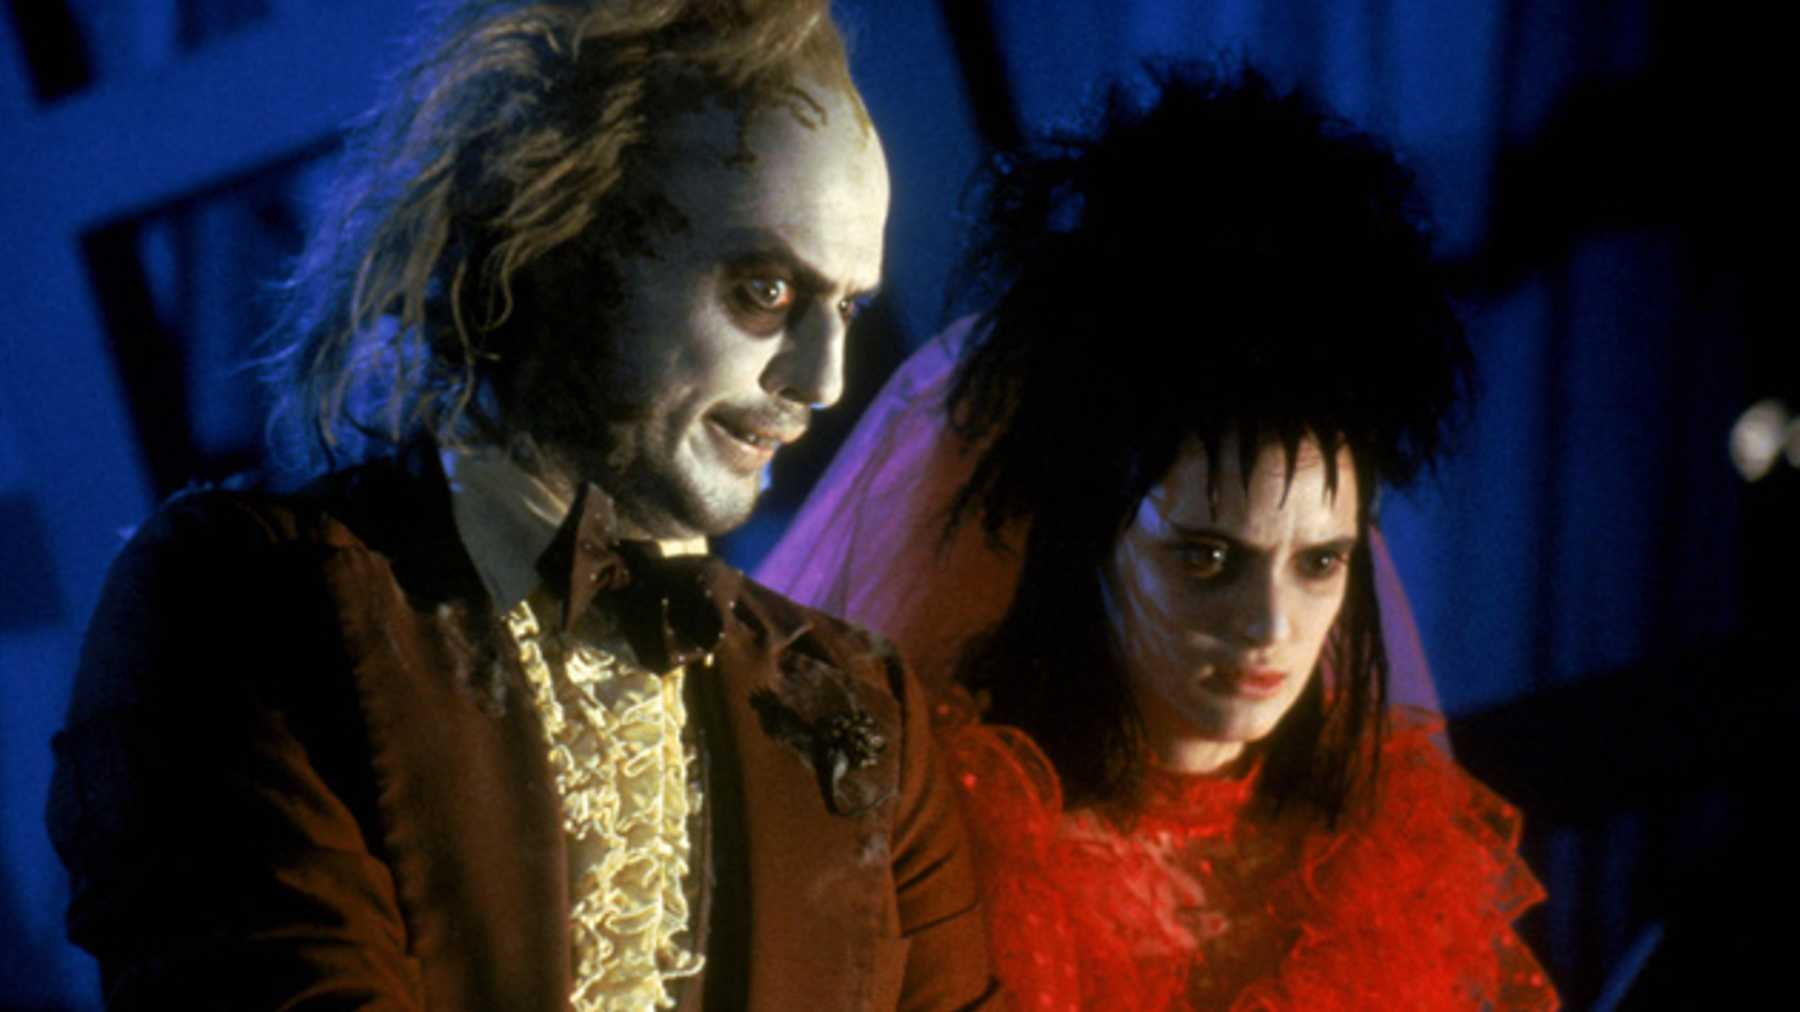 Beetlejuice movie with Michael Keaton and Winona Ryder